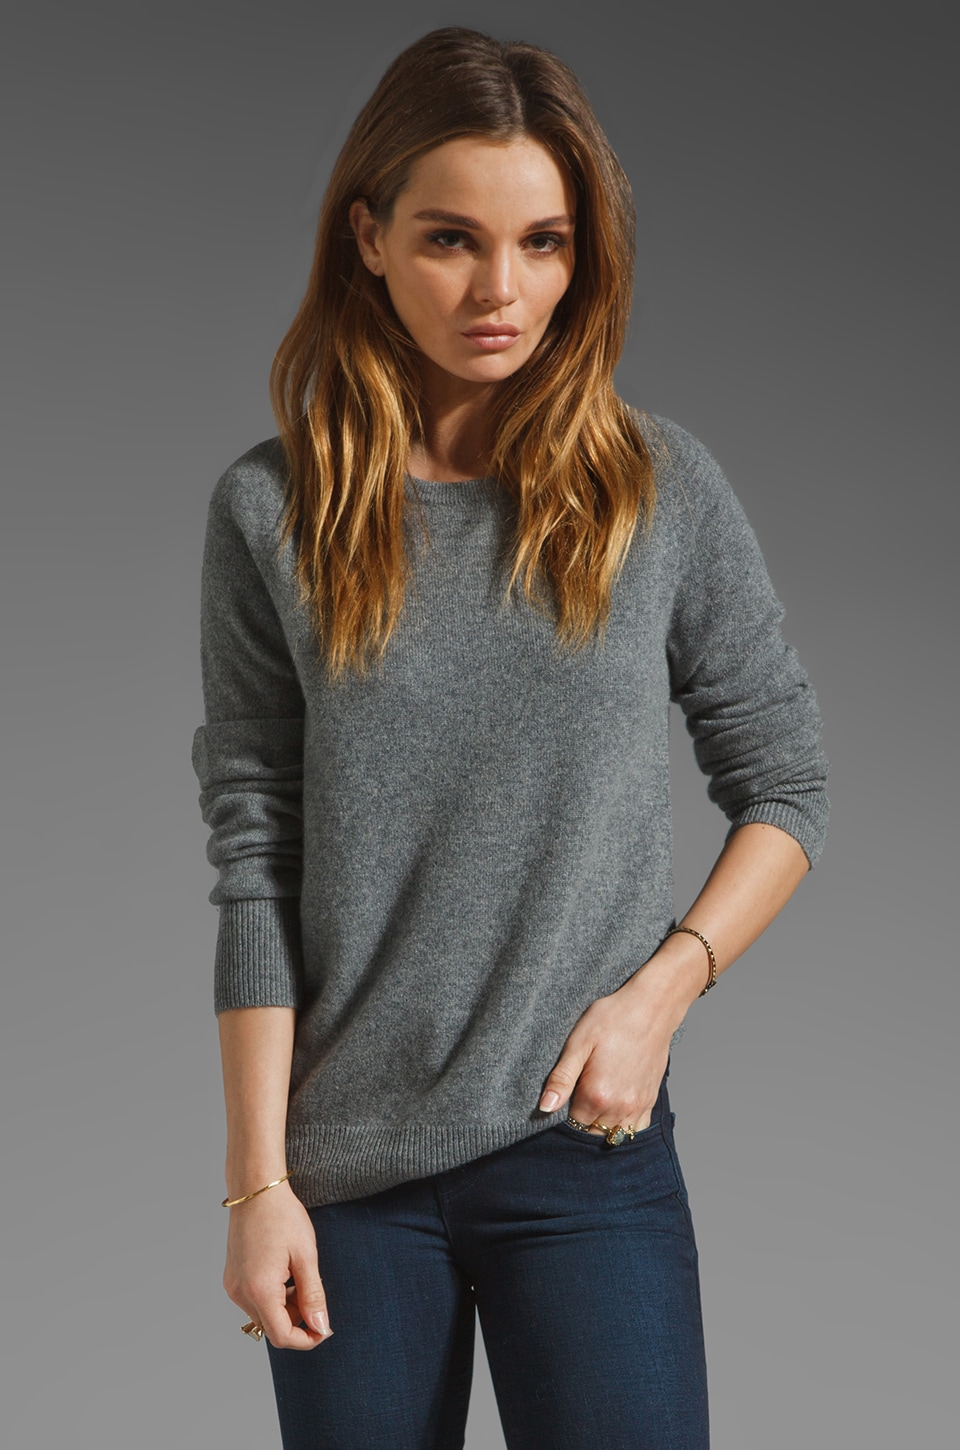 Equipment Sloane Crew Sweater in Heather Grey